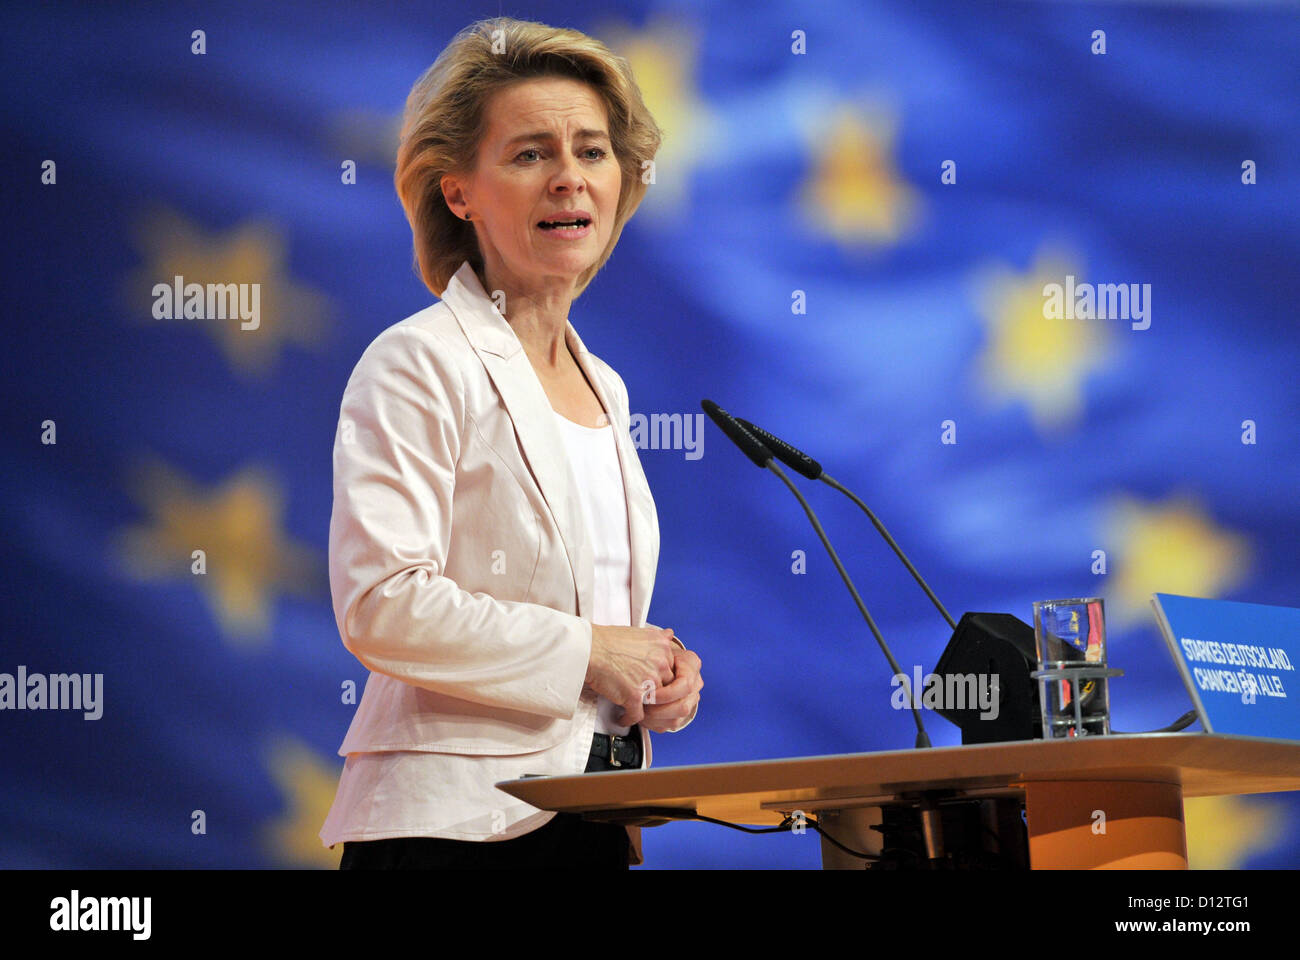 German Minister of Labour and Social Affairs Ursula von der Leyen delivers a speech the 25th Federal Party Convention - Stock Image